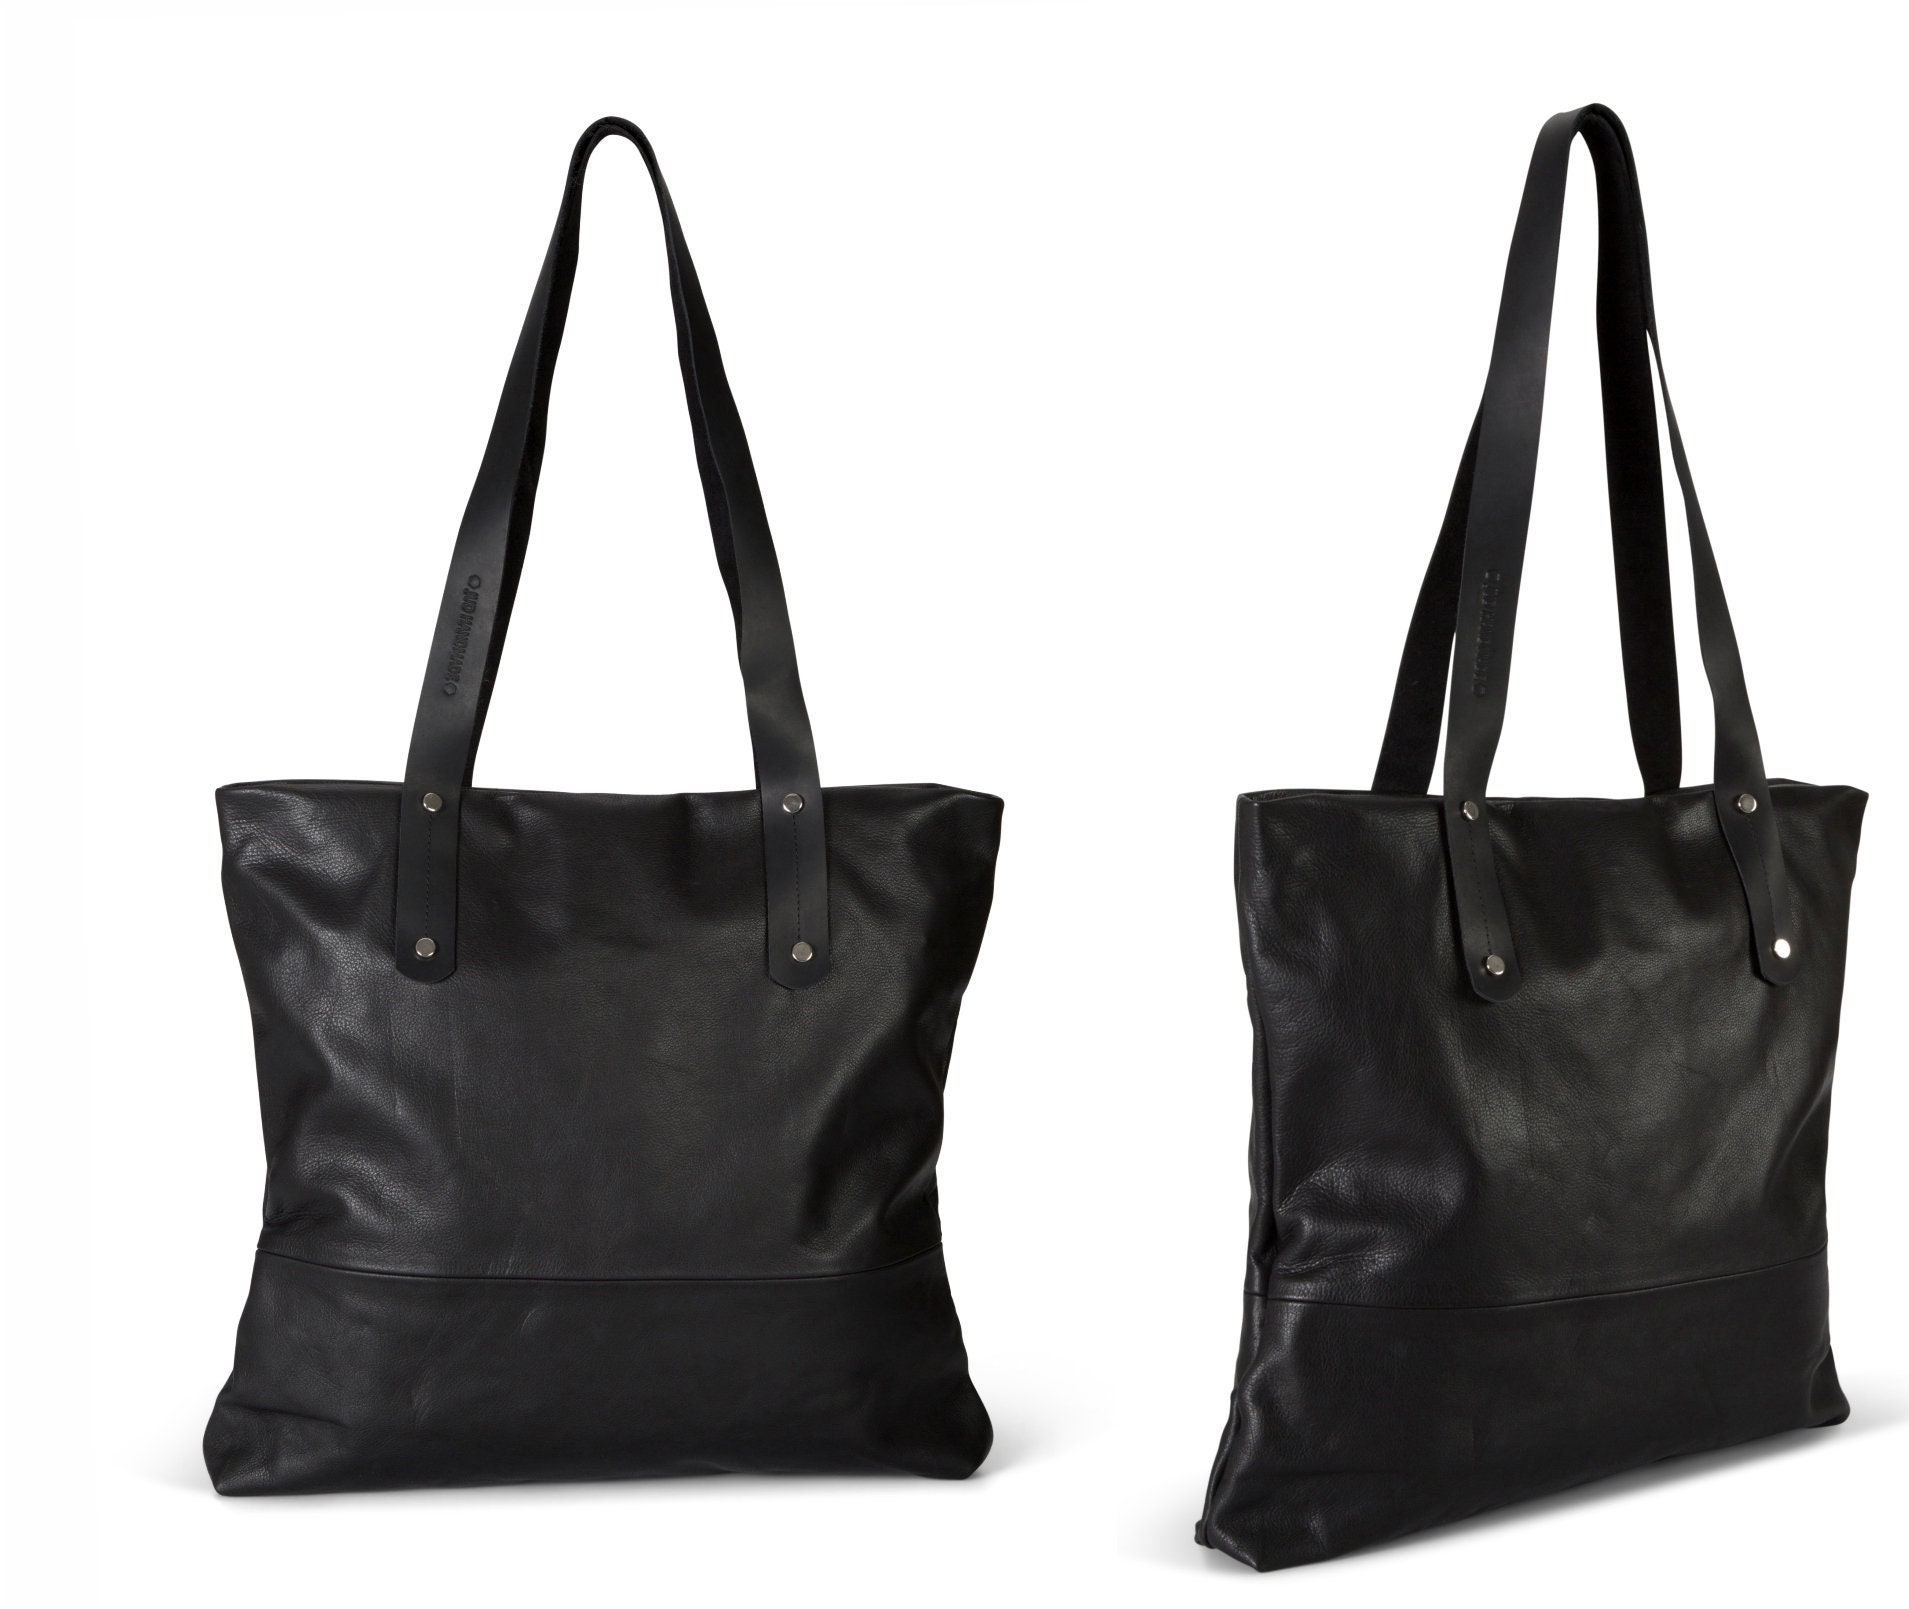 ab2606b8373 Black leather tote with zipper black leather bag women SALE   Etsy